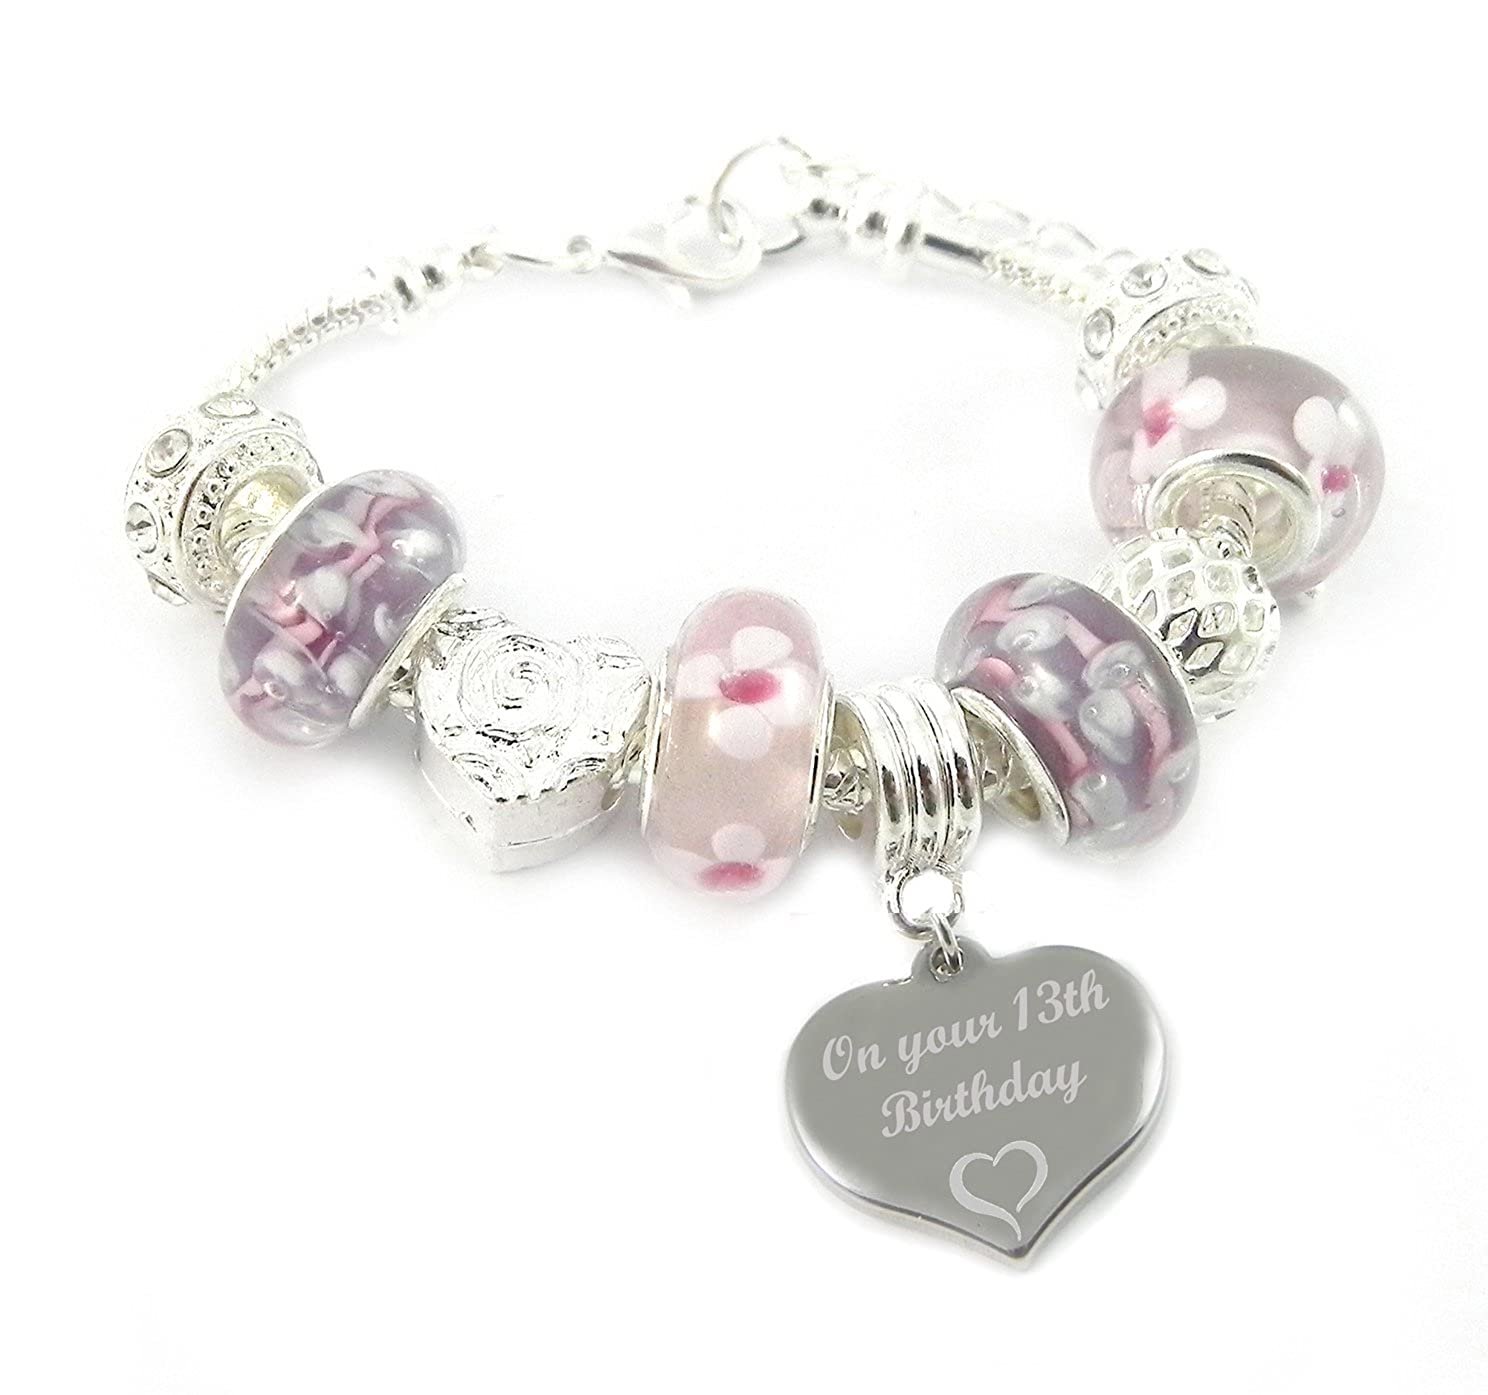 13th Birthday Personalised Engraved Pink & Lilac Charm Bracelet Girl's Charmed Jewellery LC-PKXCR-BD-13